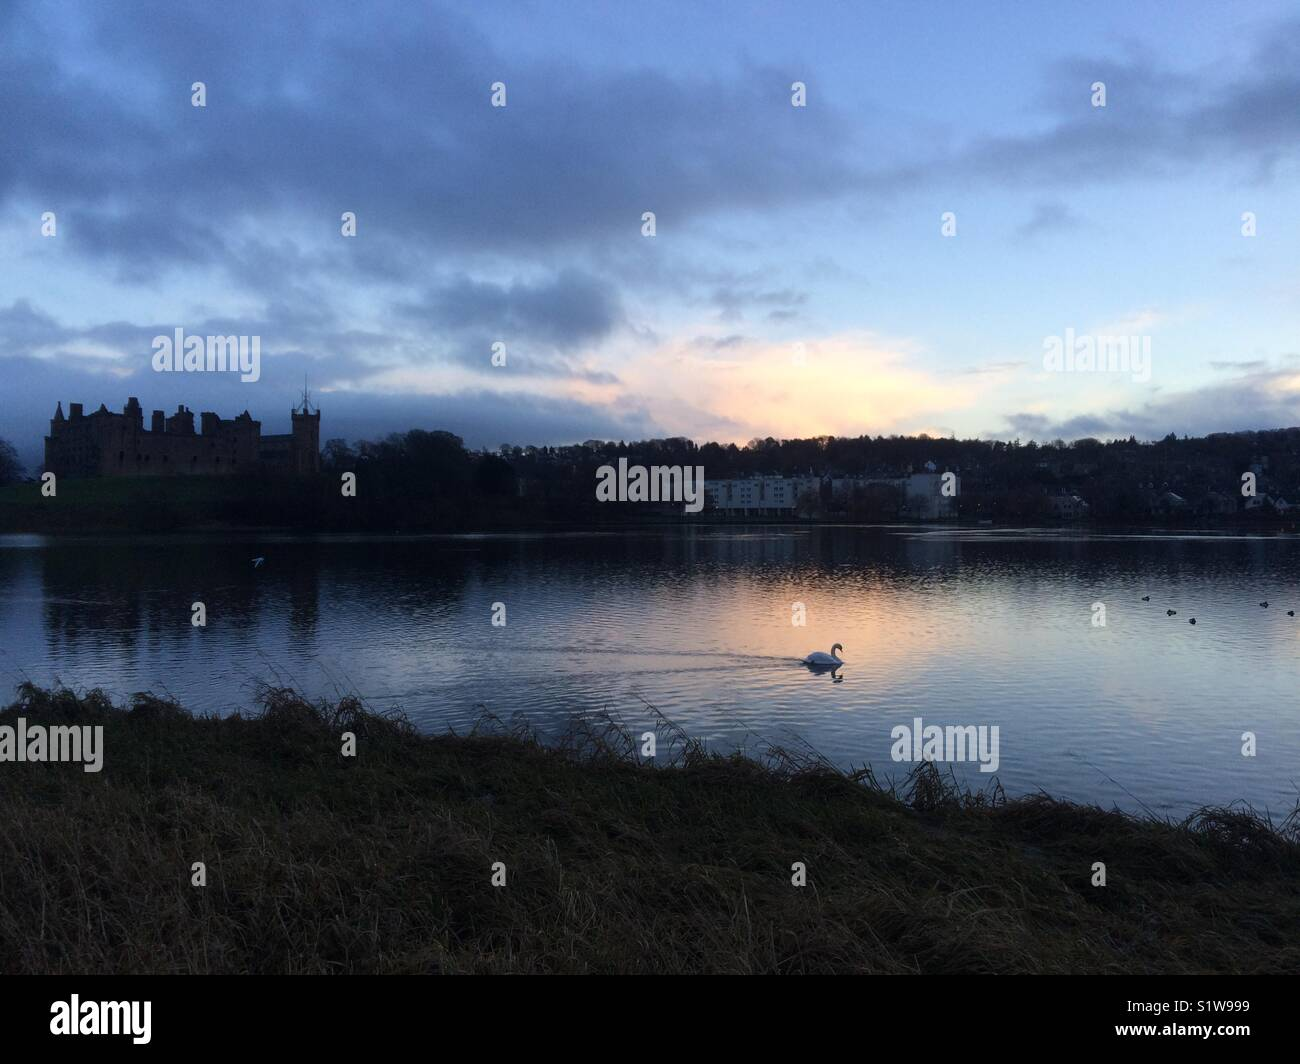 Sunset at the Loch - Stock Image